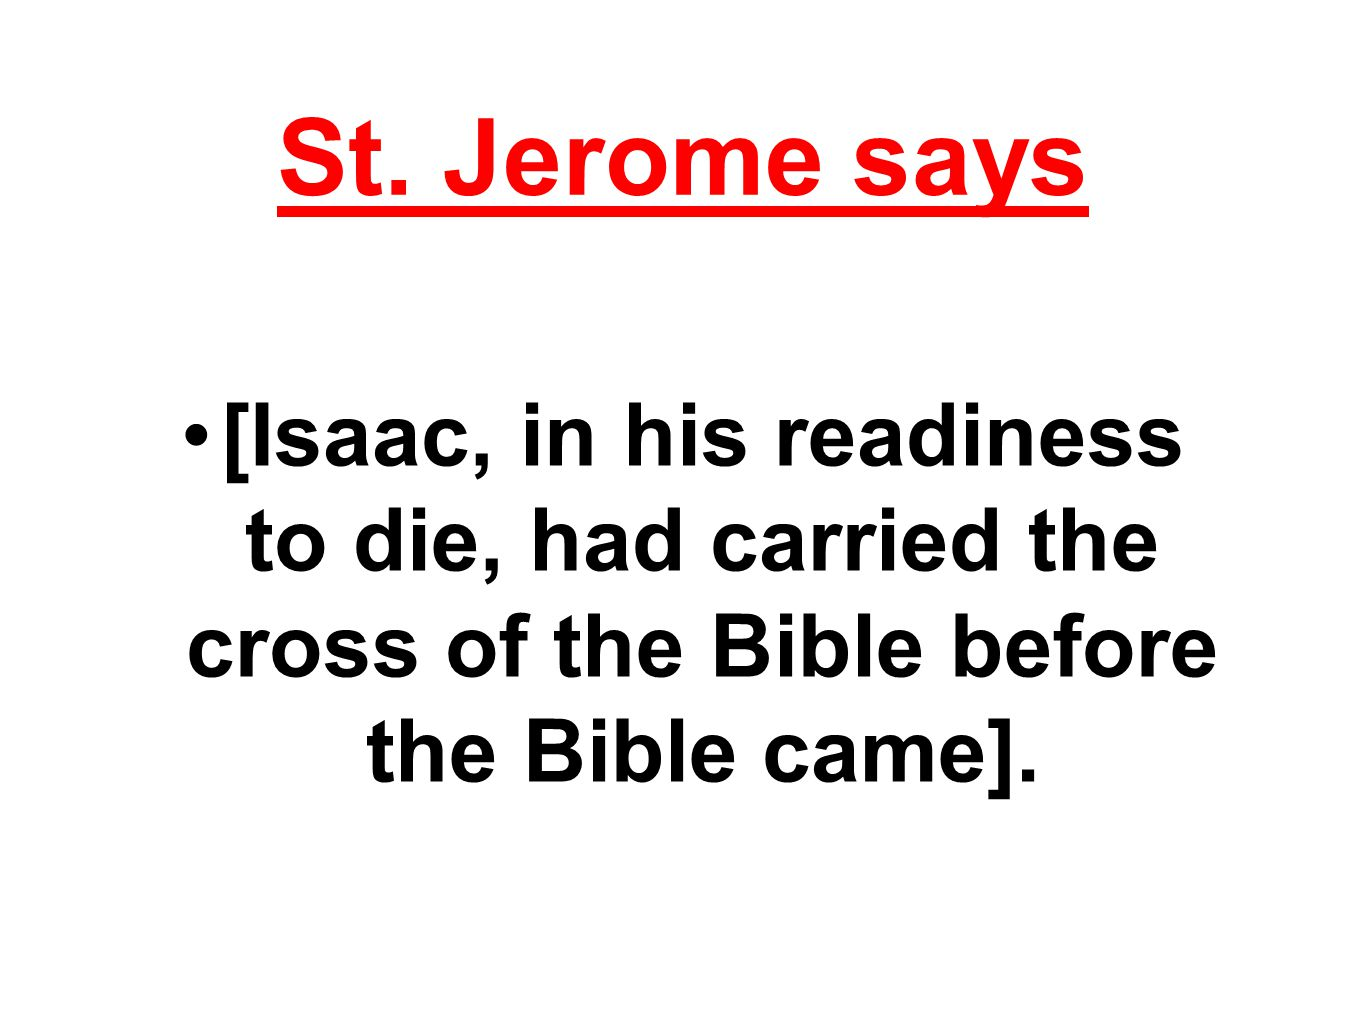 St. Jerome says [Isaac, in his readiness to die, had carried the cross of the Bible before the Bible came].